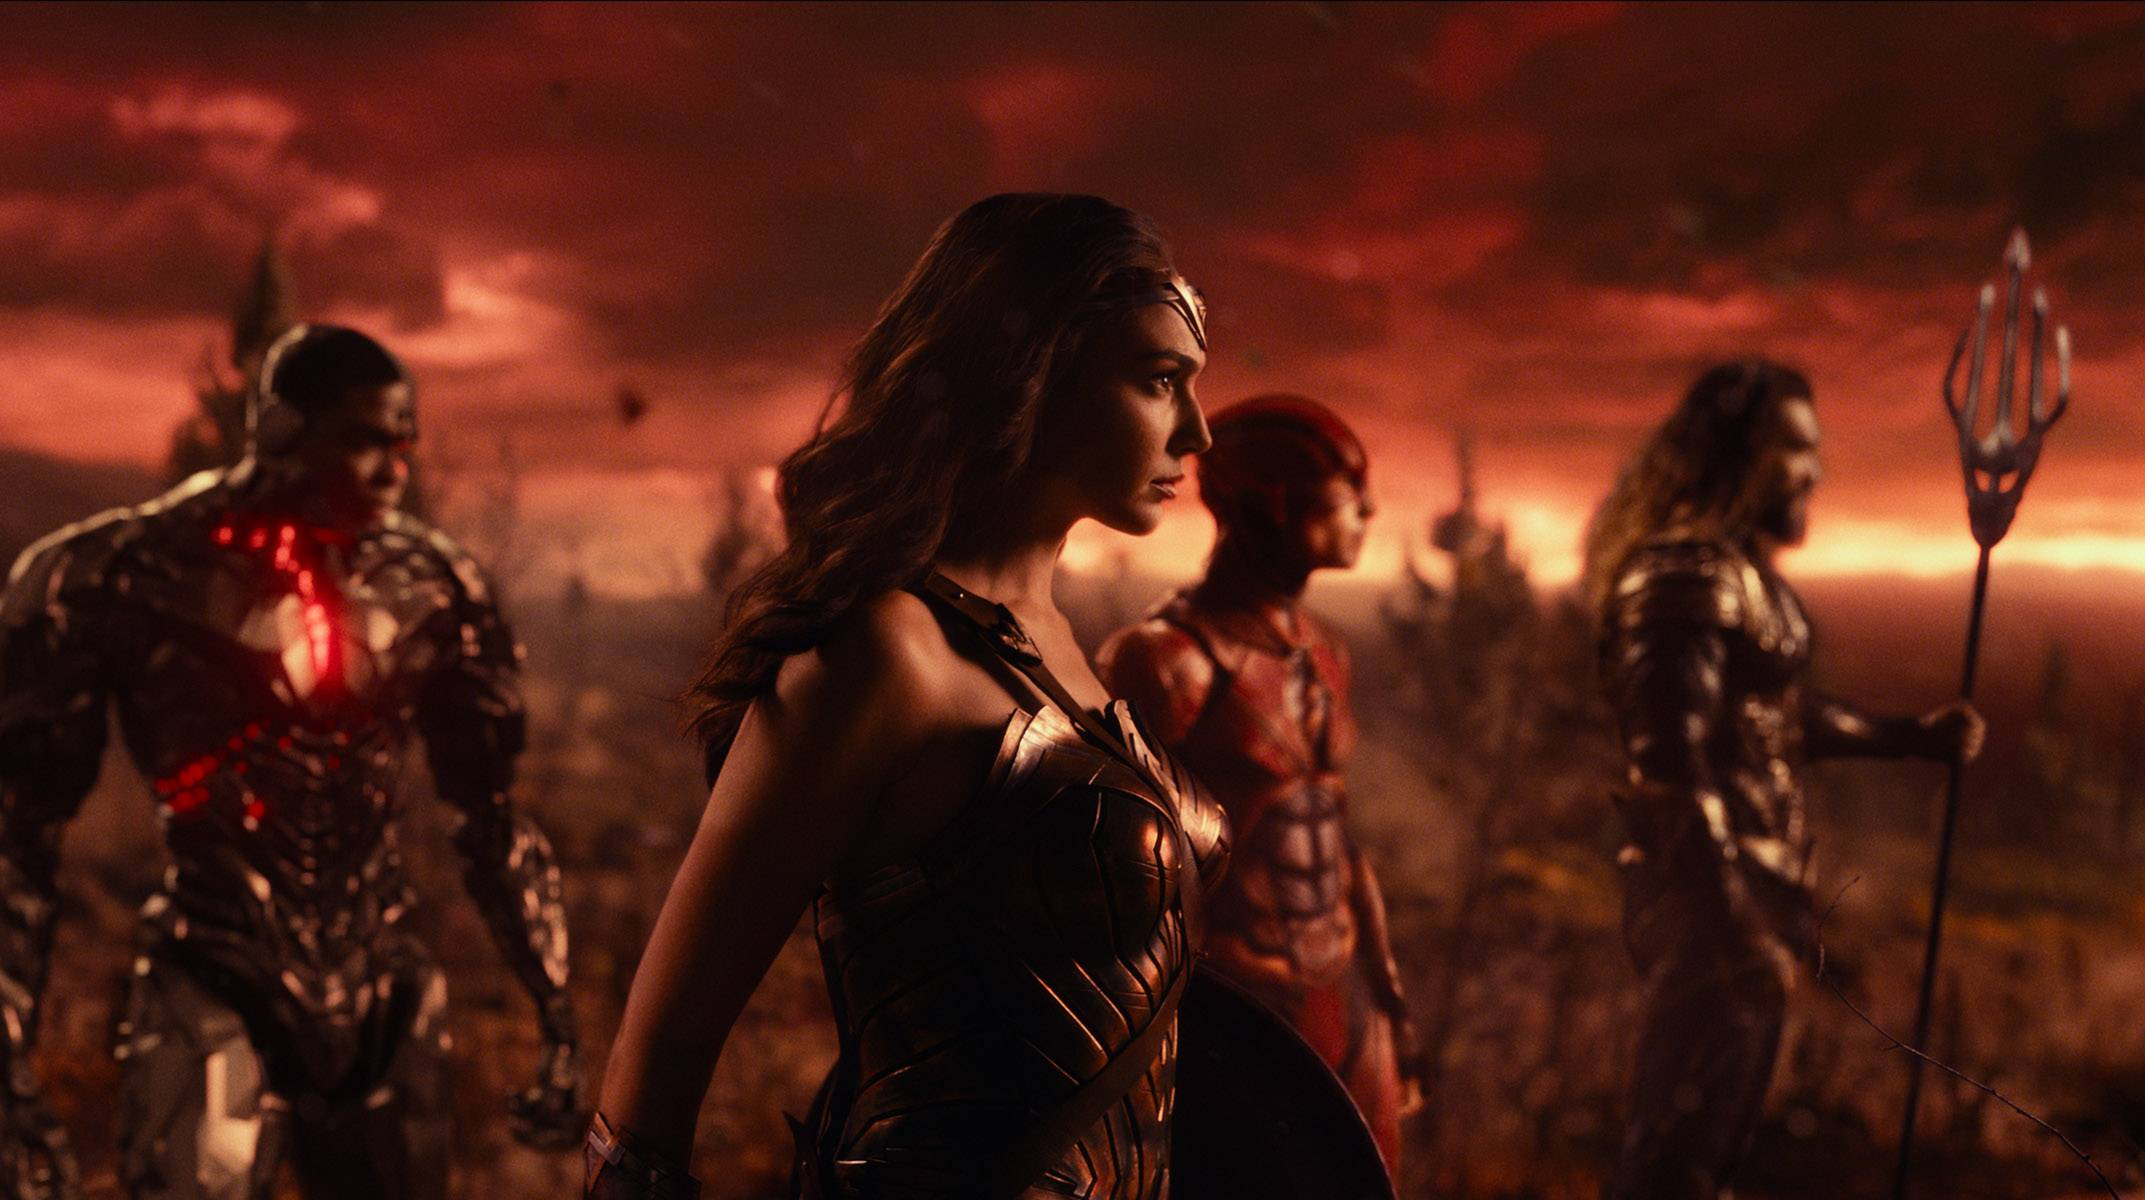 Restaurant roundup amarillo 2017 - Movie Watch Amarillo Film Options For Nov 16 To 23 Including Justice League Wonder More